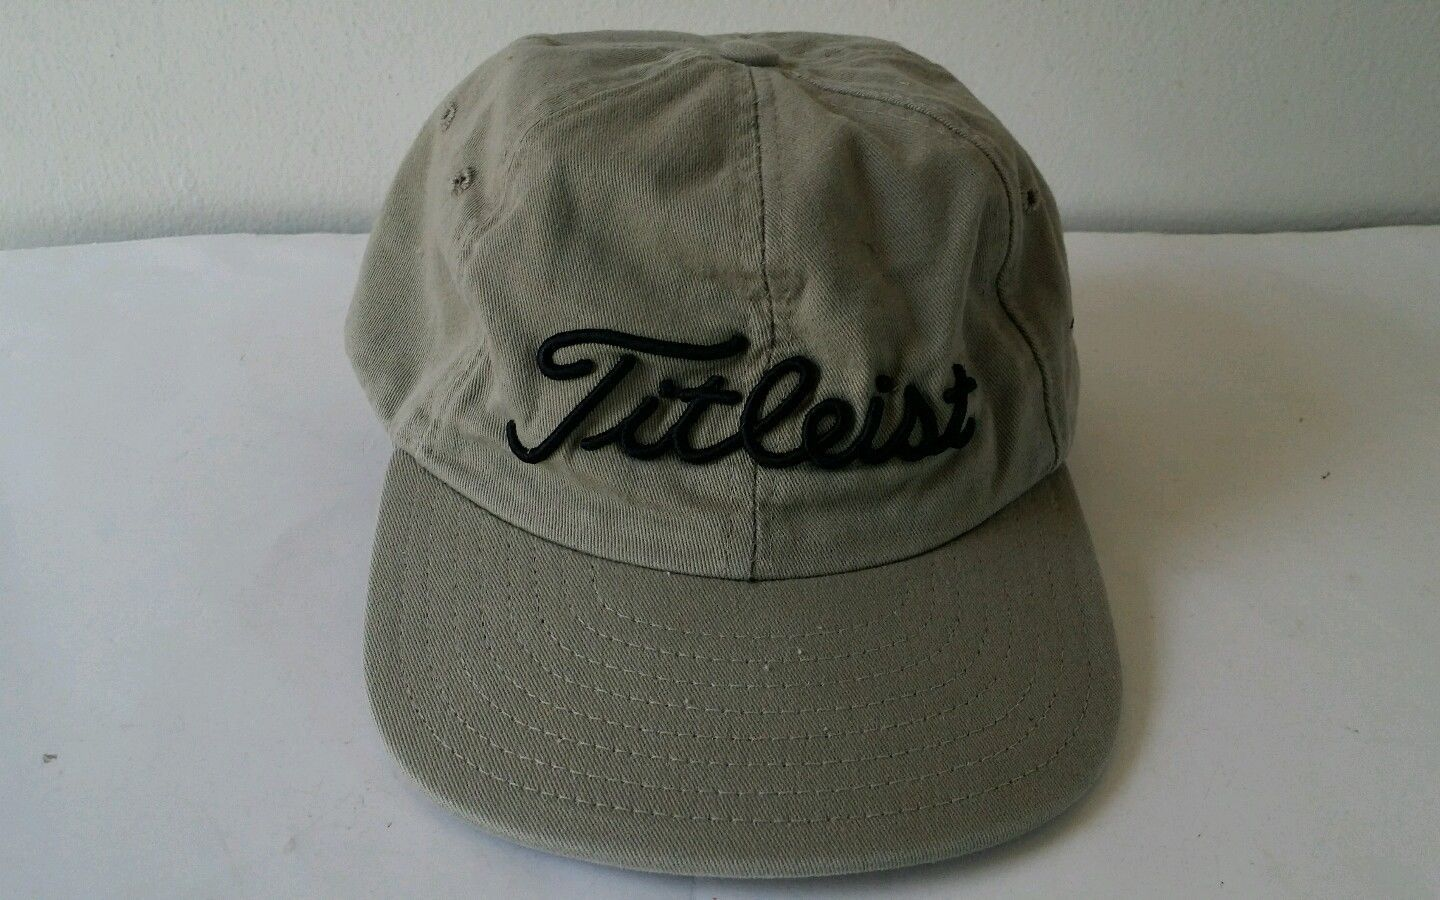 839f6eb96f54 Rare Vintage Titleist Golf Hat script logo and 50 similar items